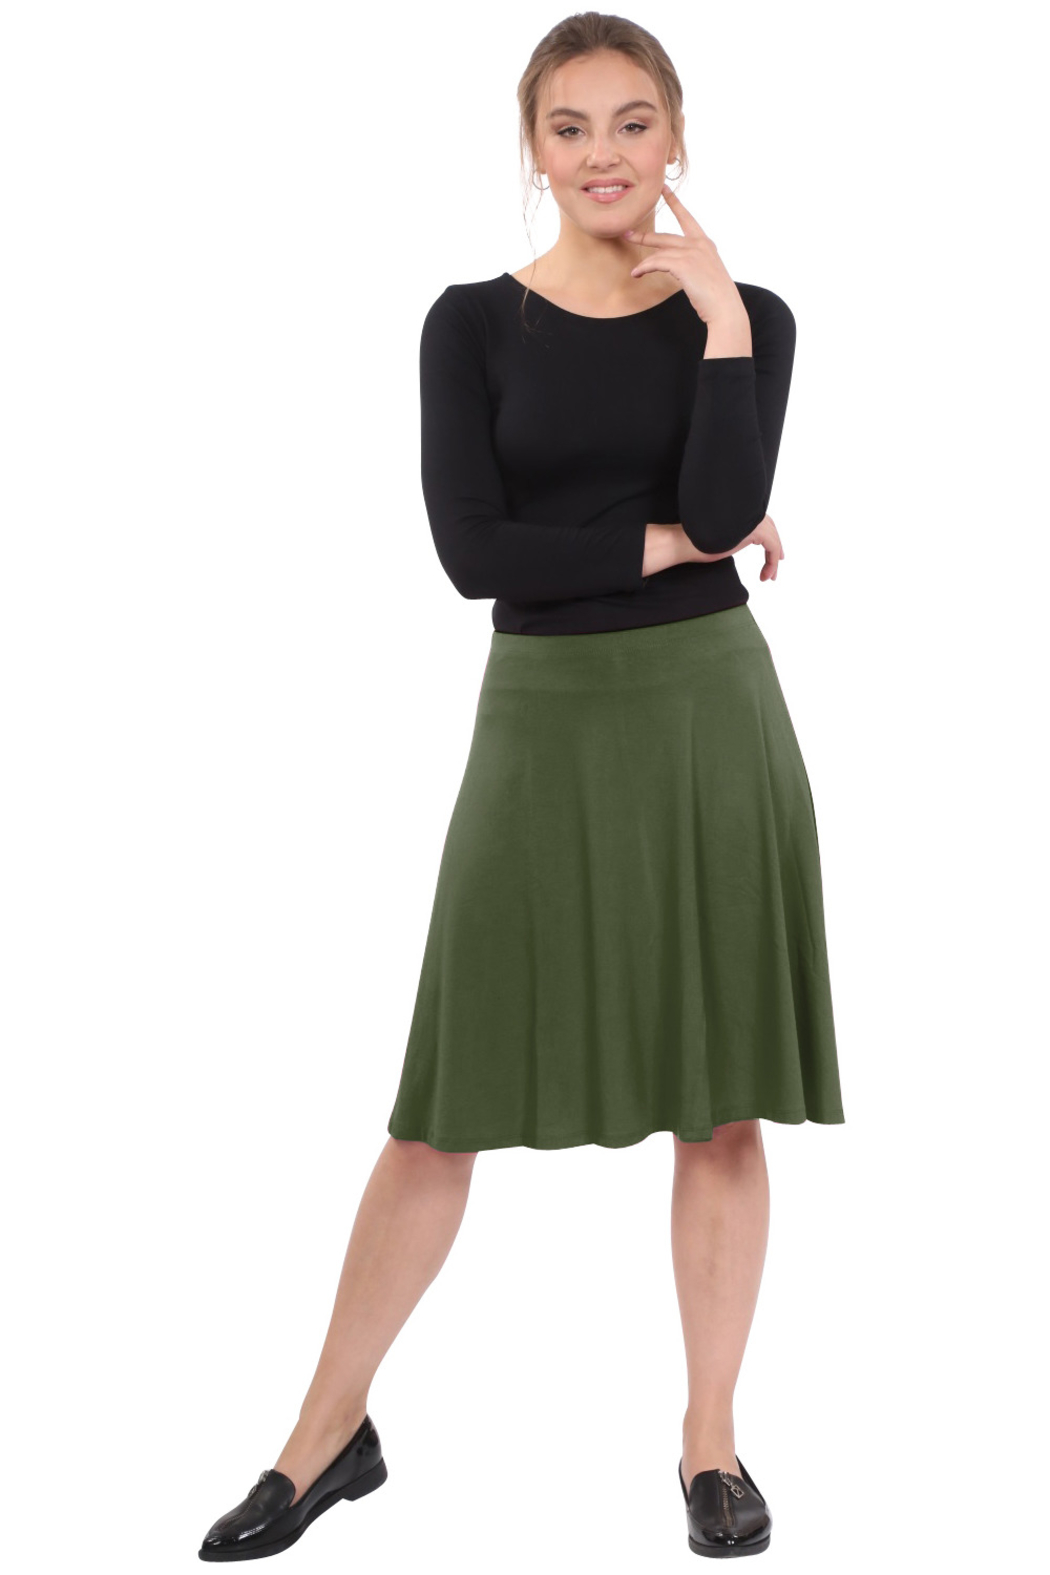 Kosher Casual Knee-Length Skater Skirt with Full A-line Cut - Front Cropped Image